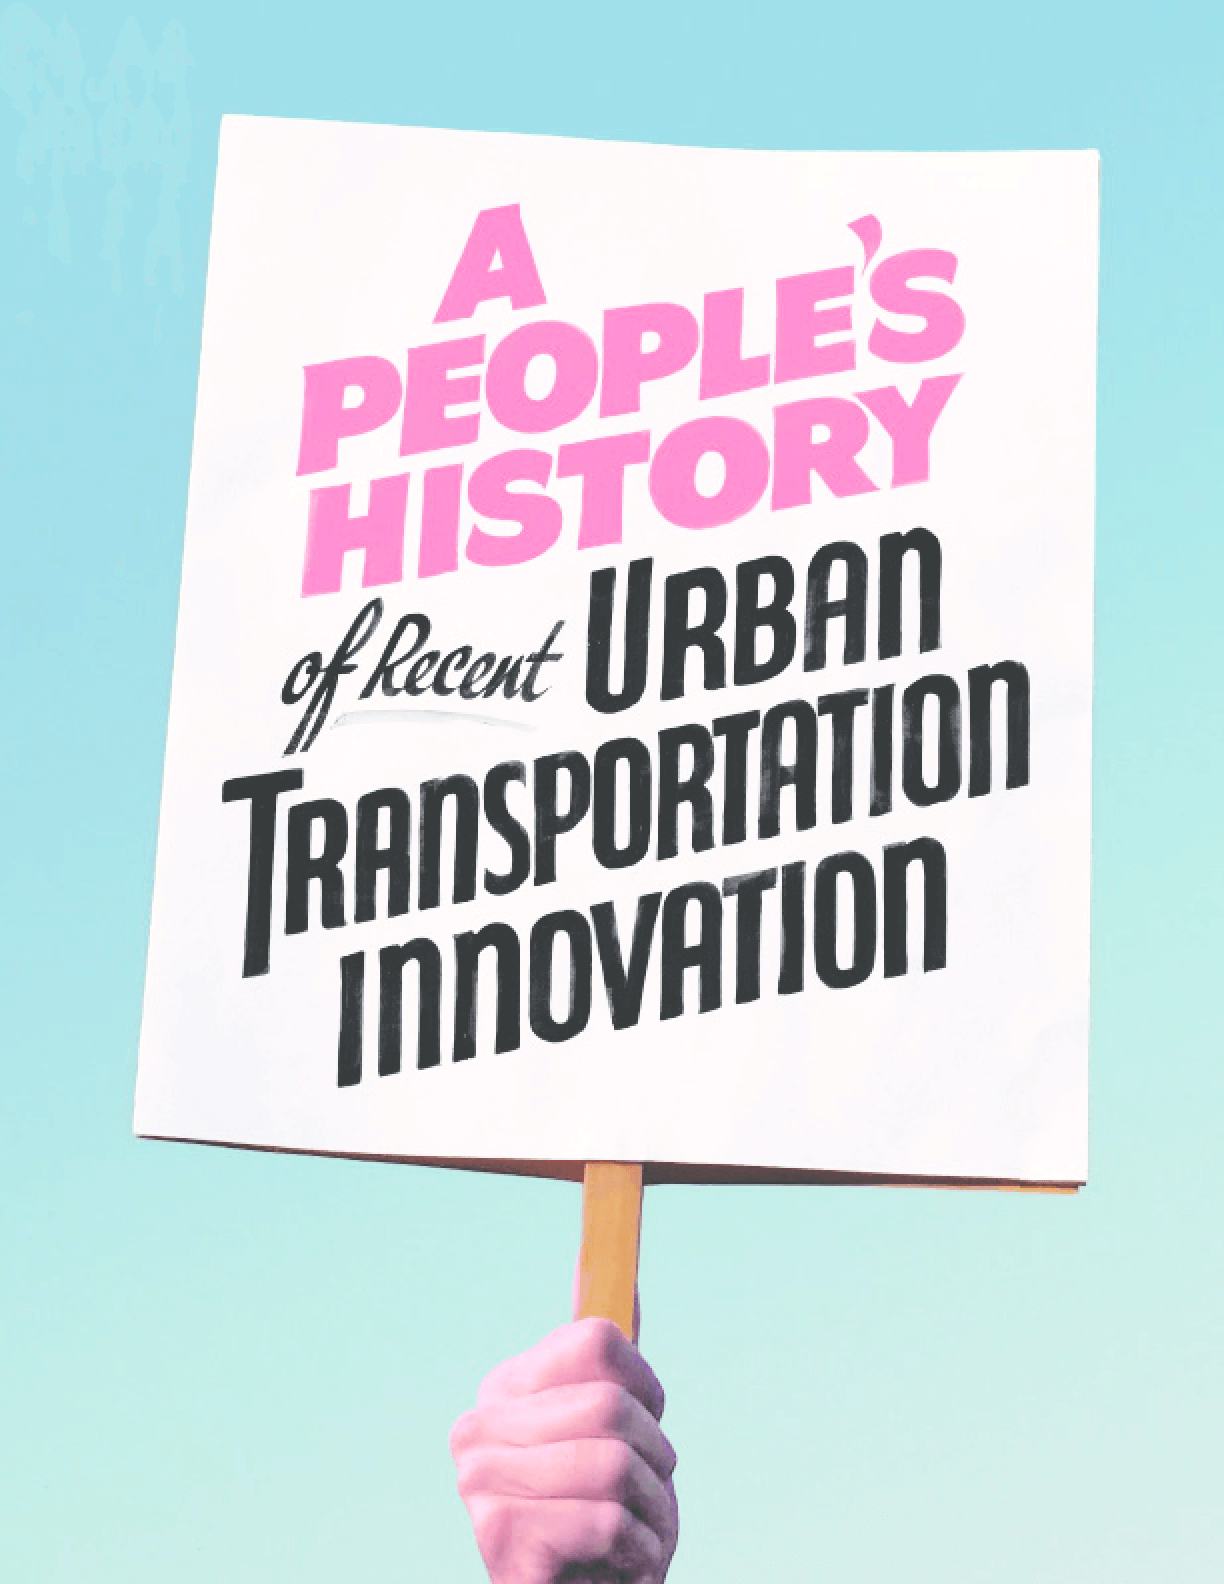 A People's History Of Recent Urban Transportation Innovation